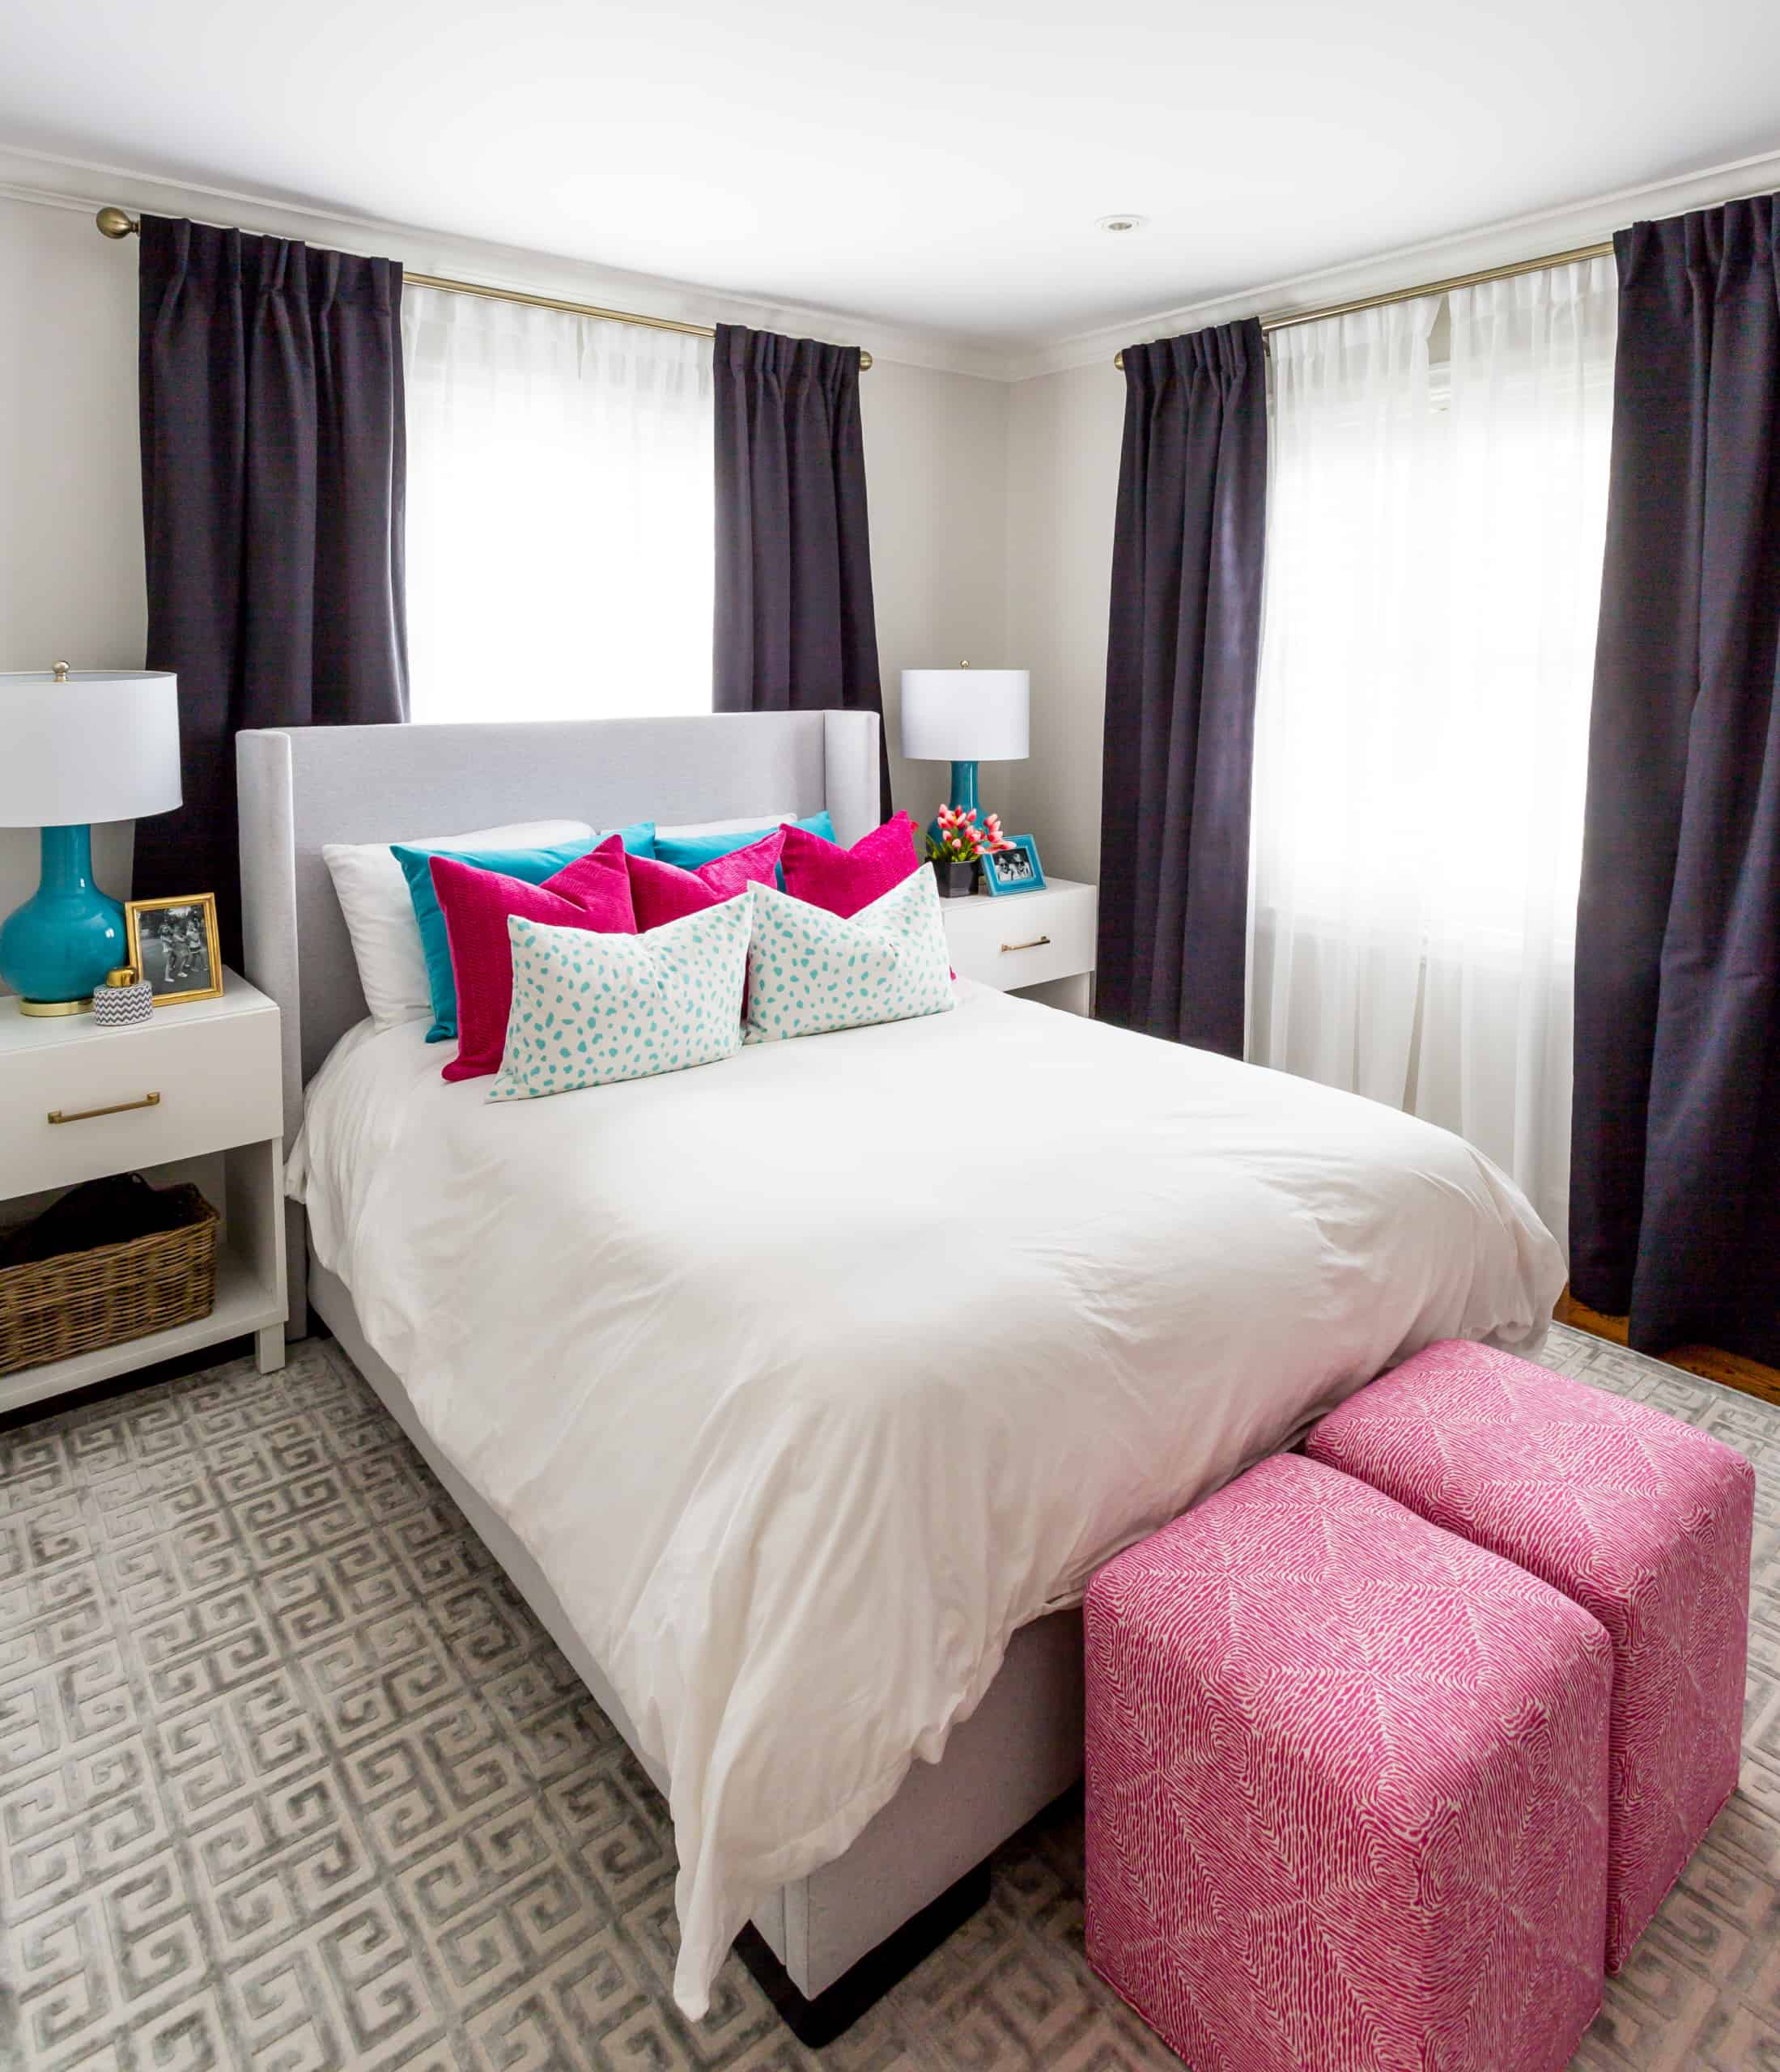 Array of white, blue, and pink pillows on a white bed